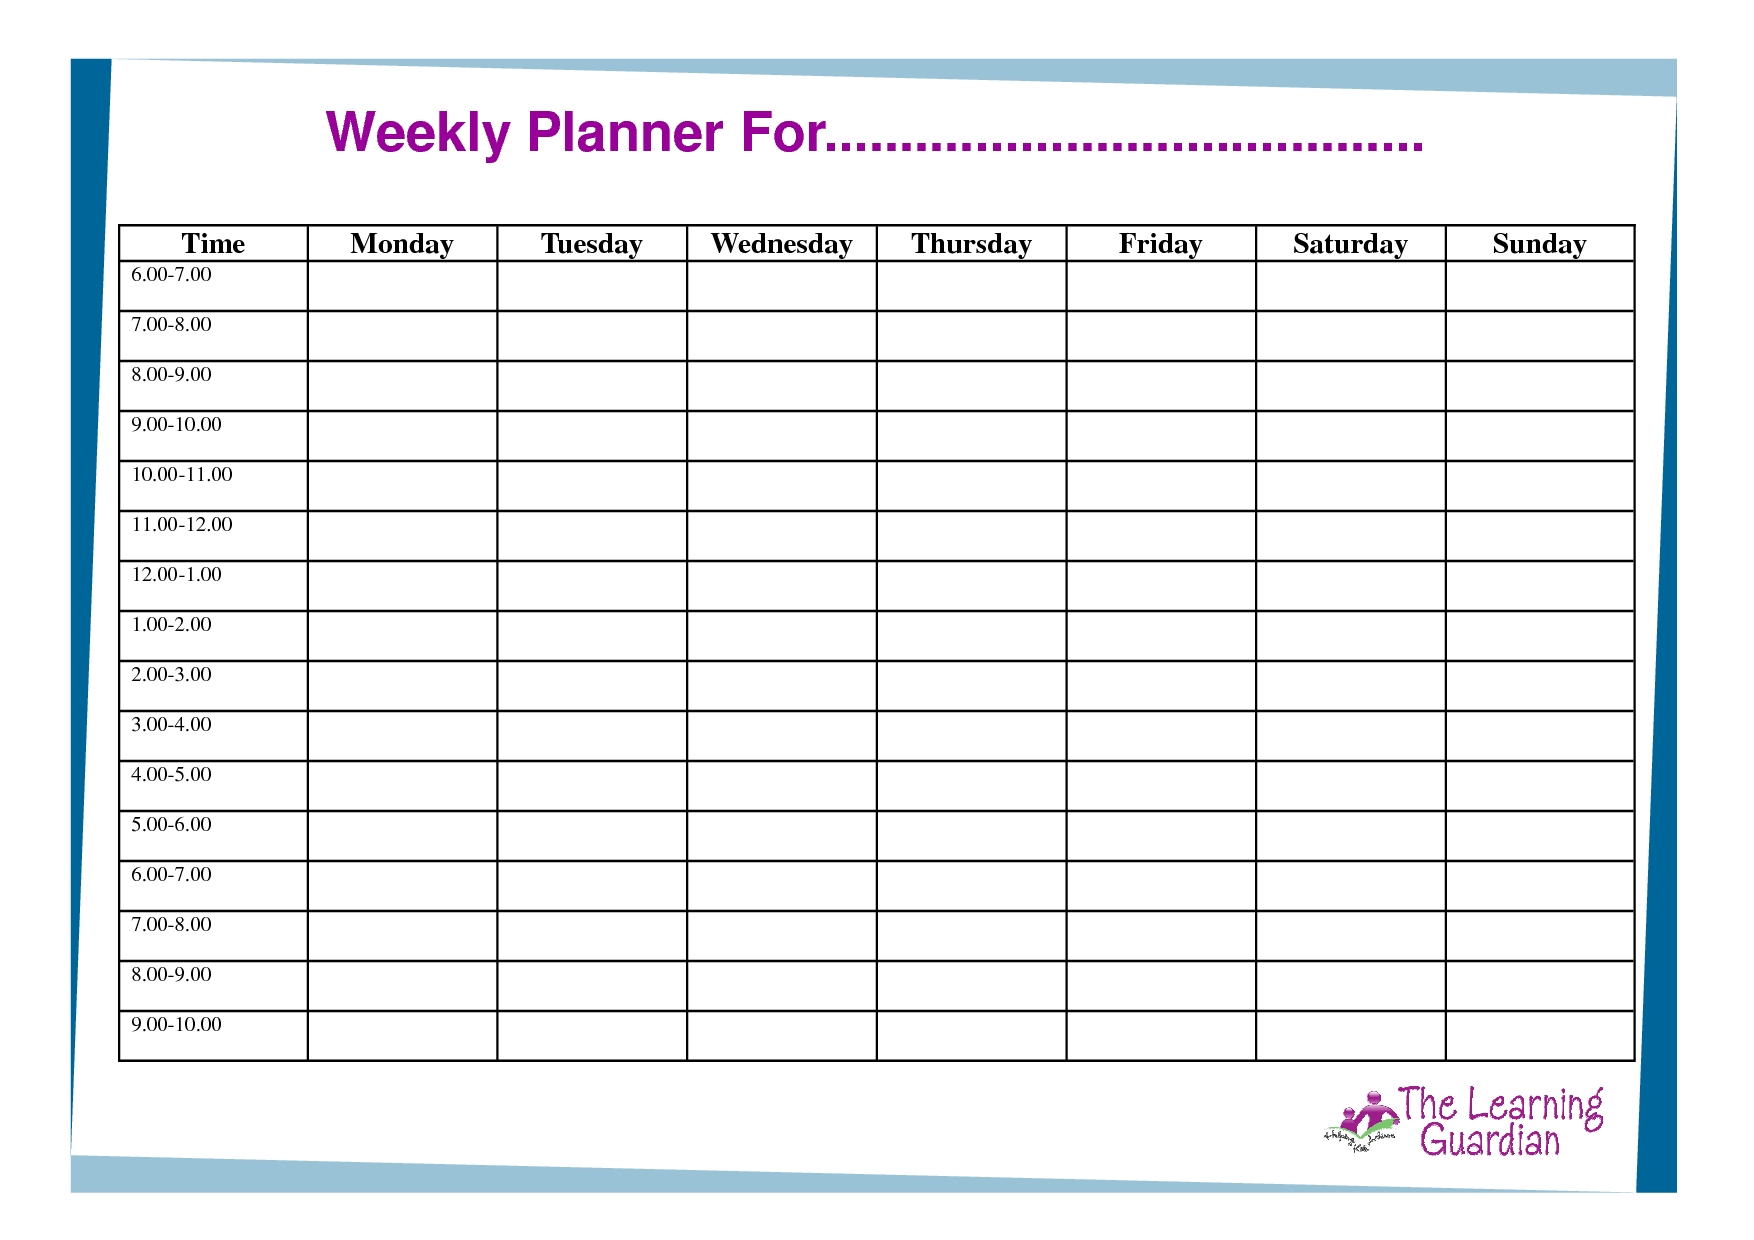 Free Printable Weekly Calendar Templates | Weekly Planner-Template Monday To Friday